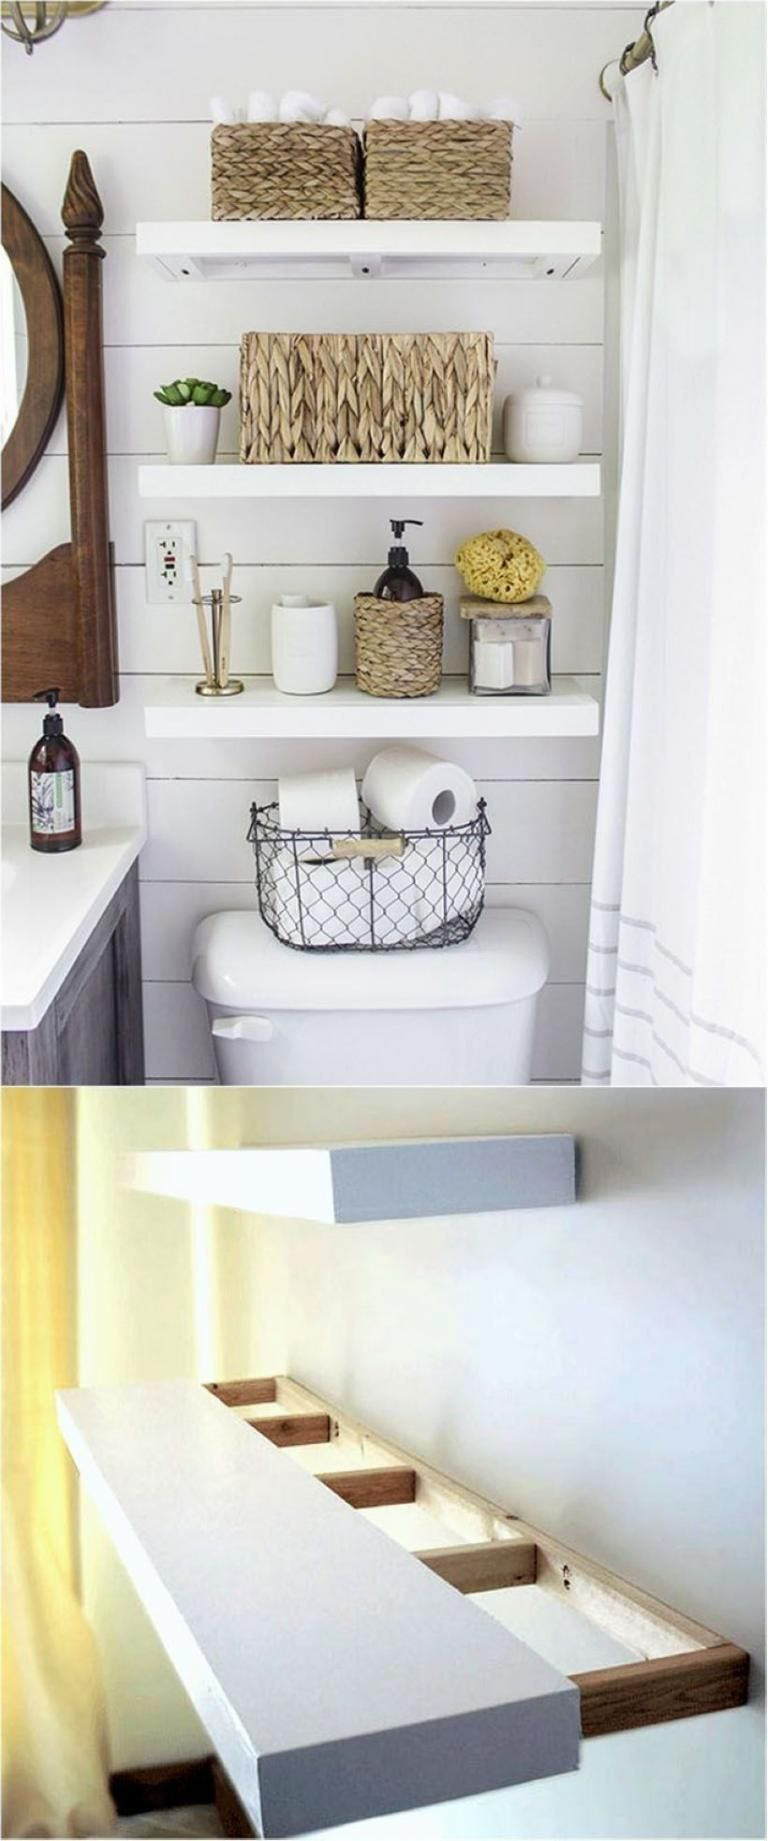 best diy floating shelves and bathroom ideas bathrooms double basin sink chunky reclaimed wood closet factory small storage shelf unit garage white wall with pegs lime green ikea